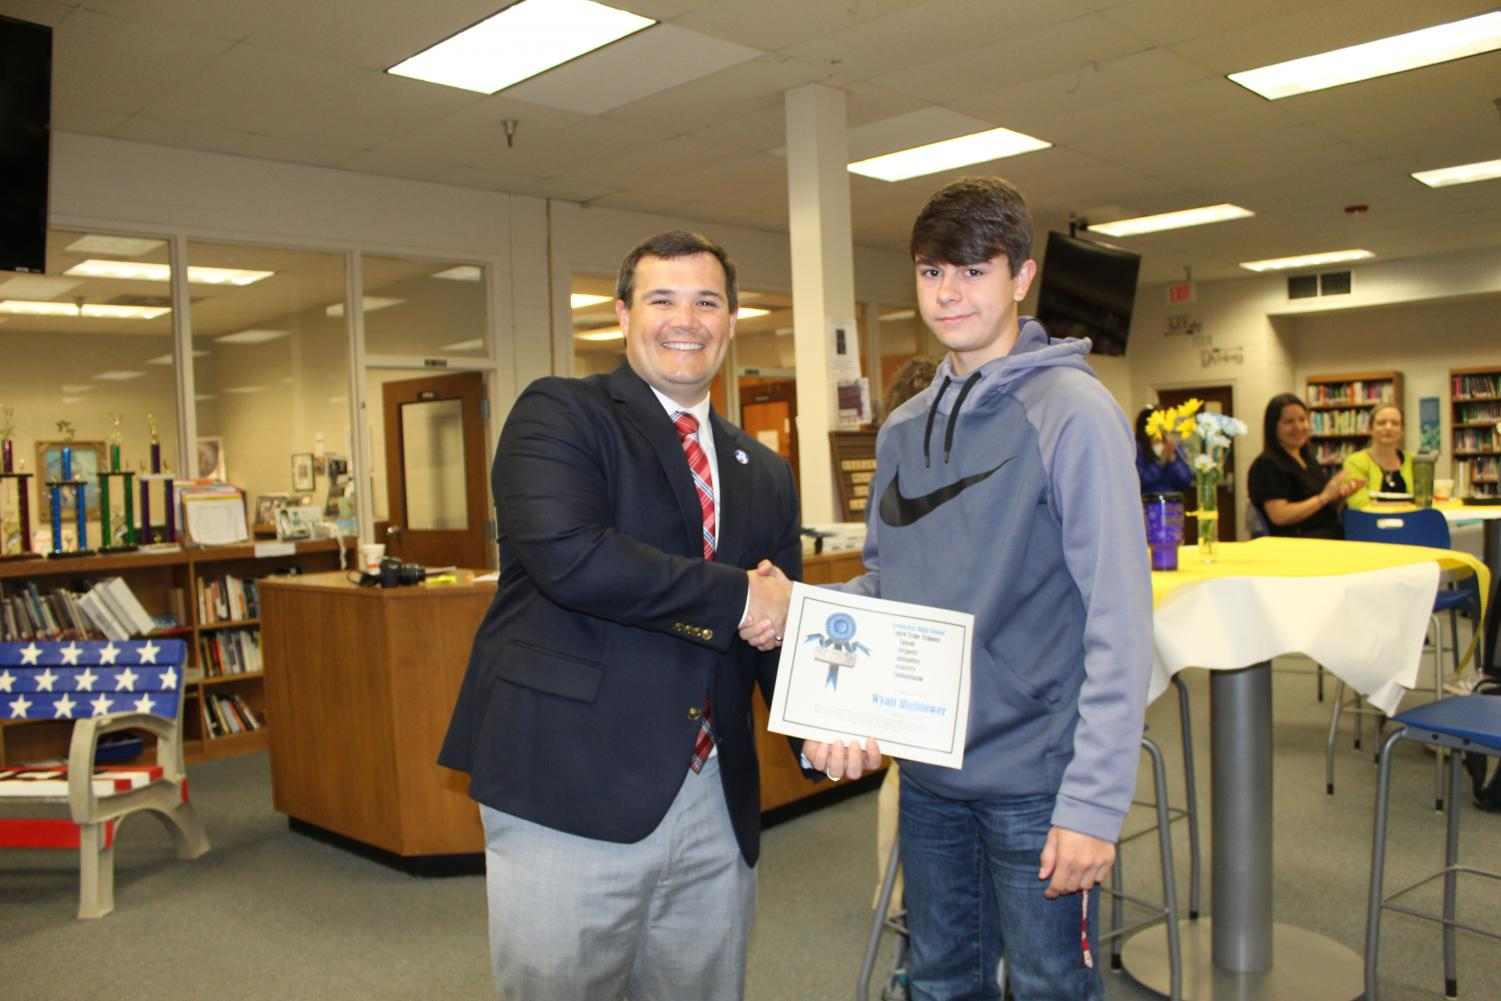 Mr. Rhodarmer handing certificate to Wyatt Hightower